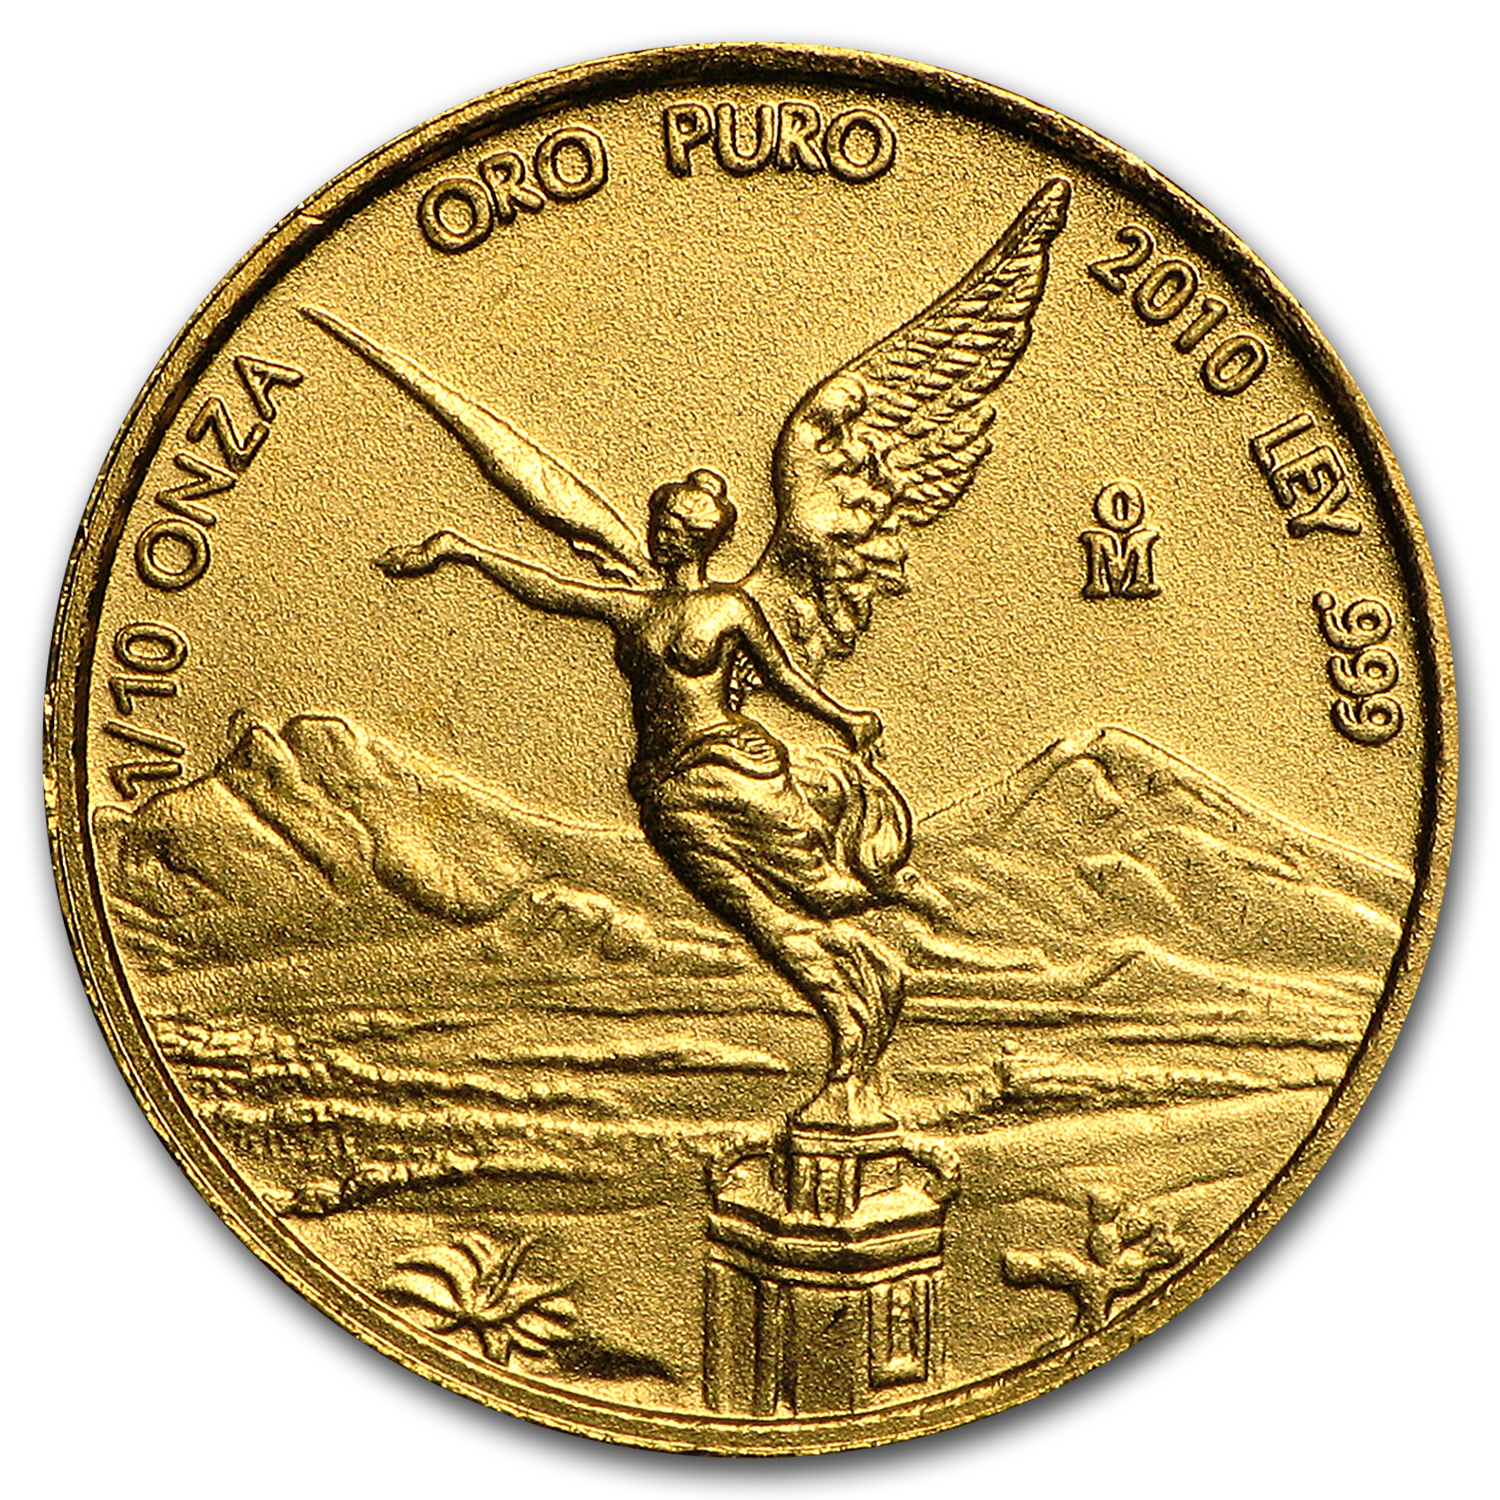 2010 Mexico 1/10 oz Gold Libertad BU